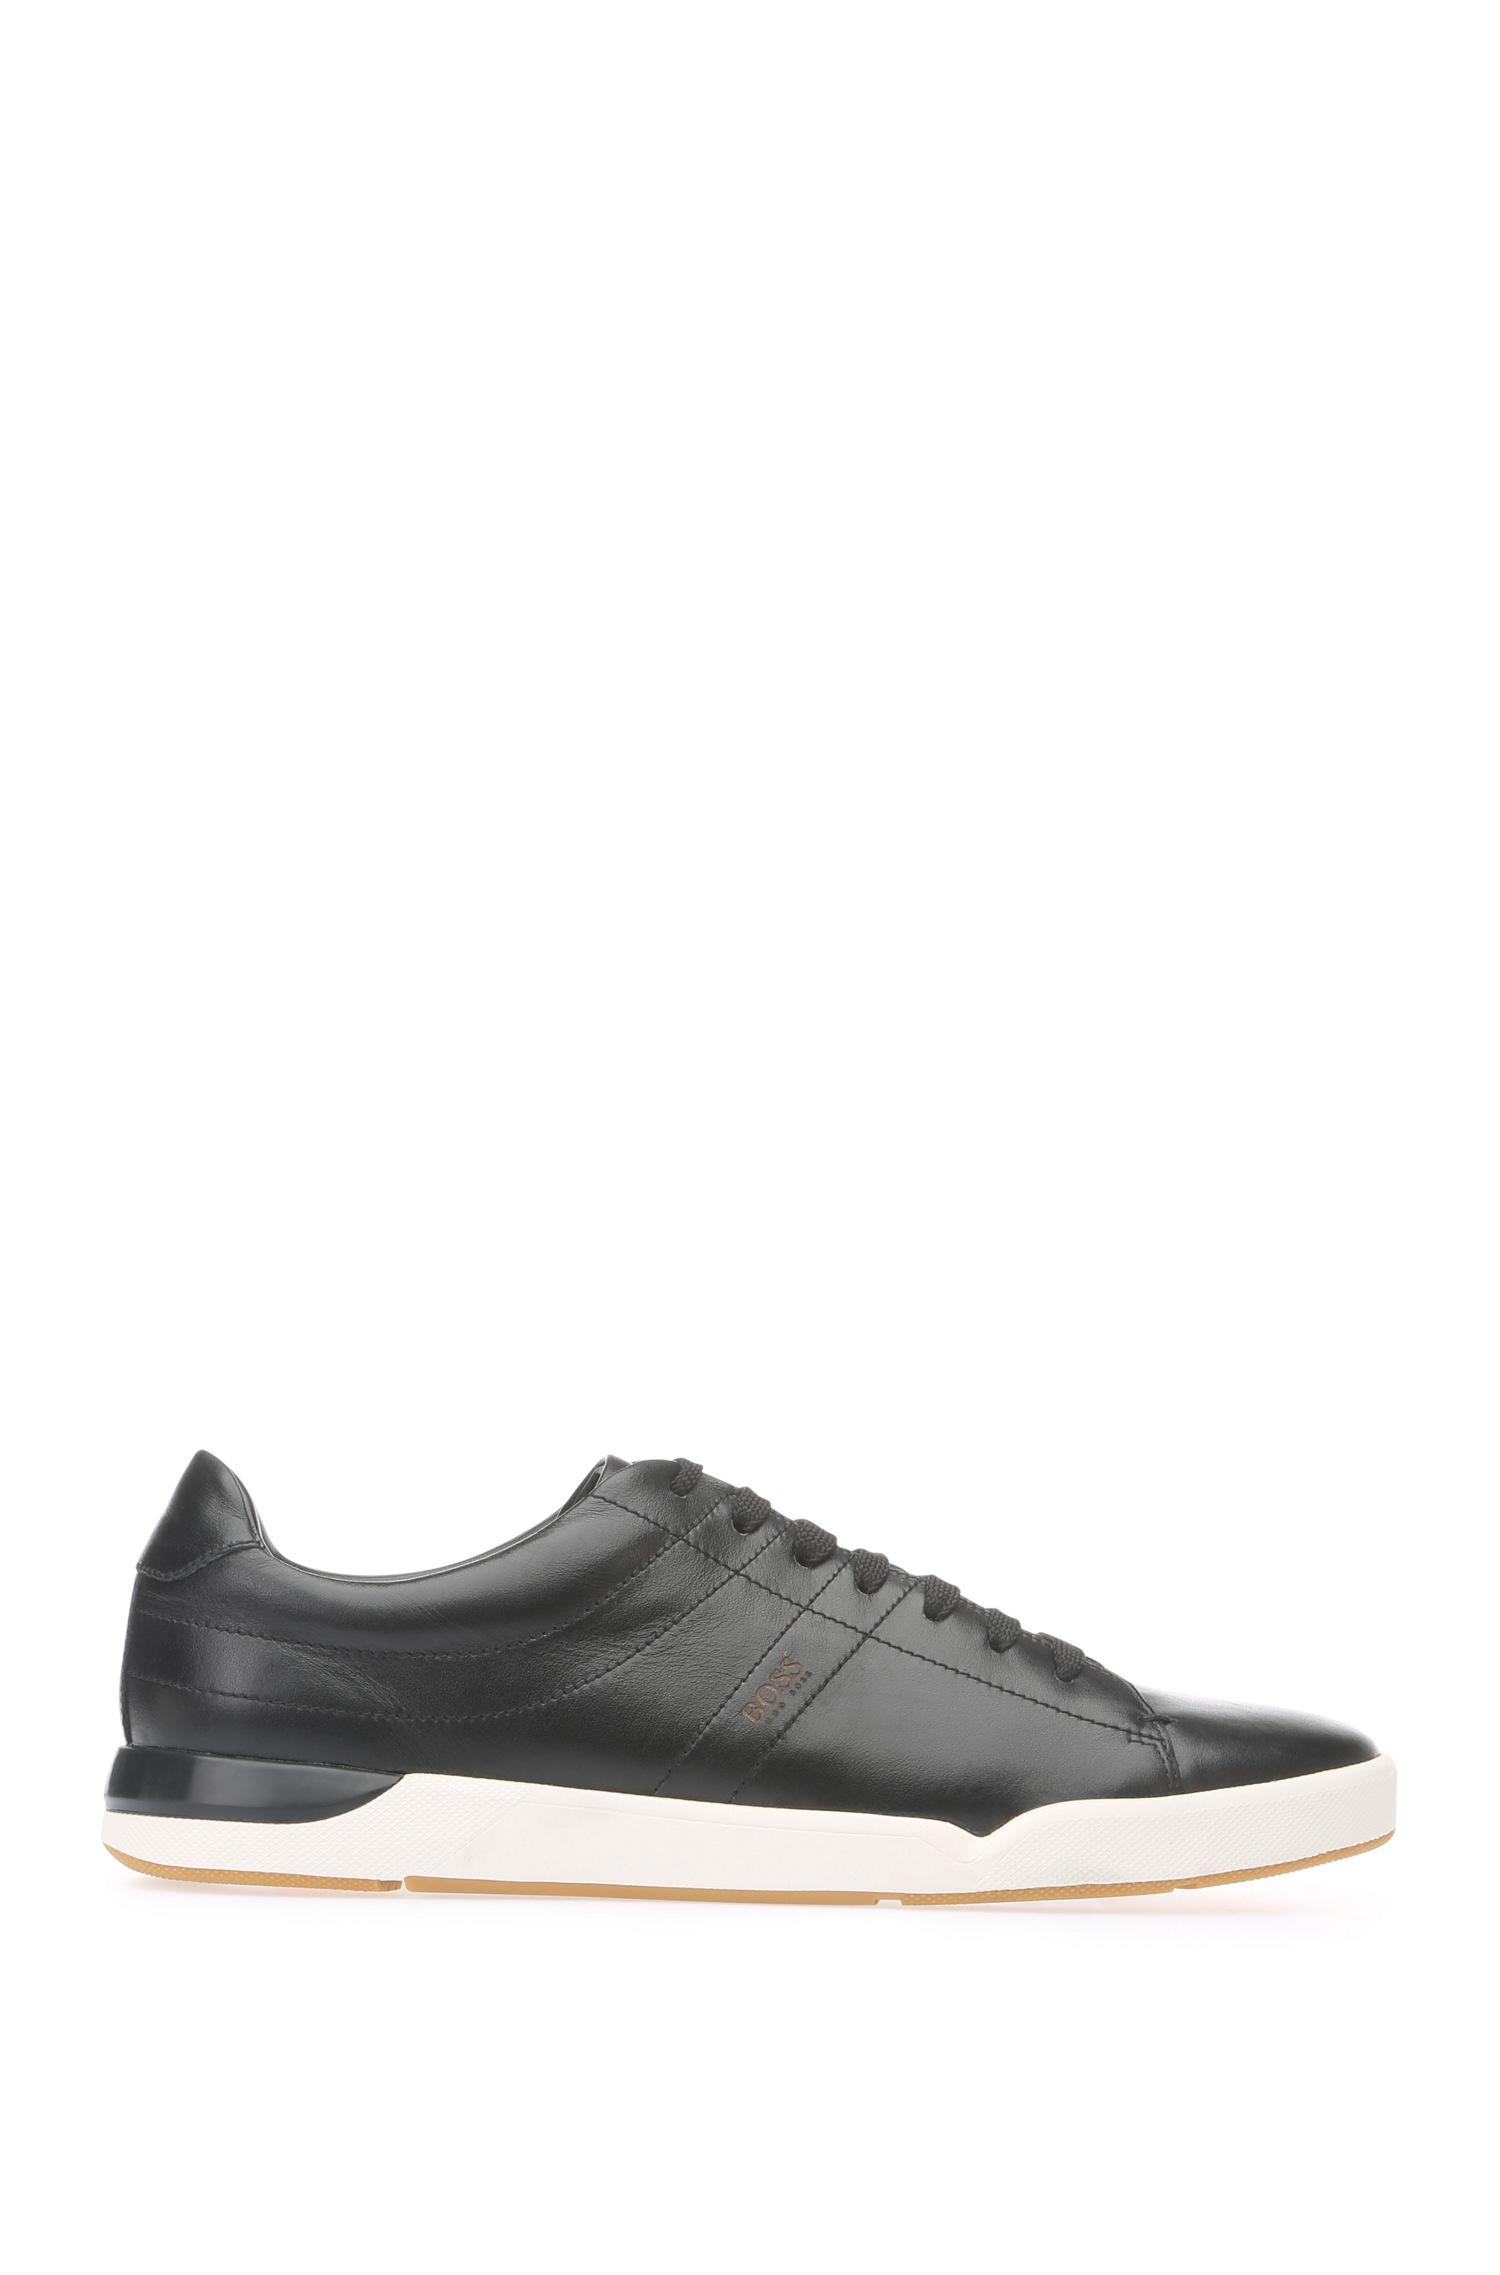 Trainers in smooth leather: Stillnes_Tenn_ltpl BOSS